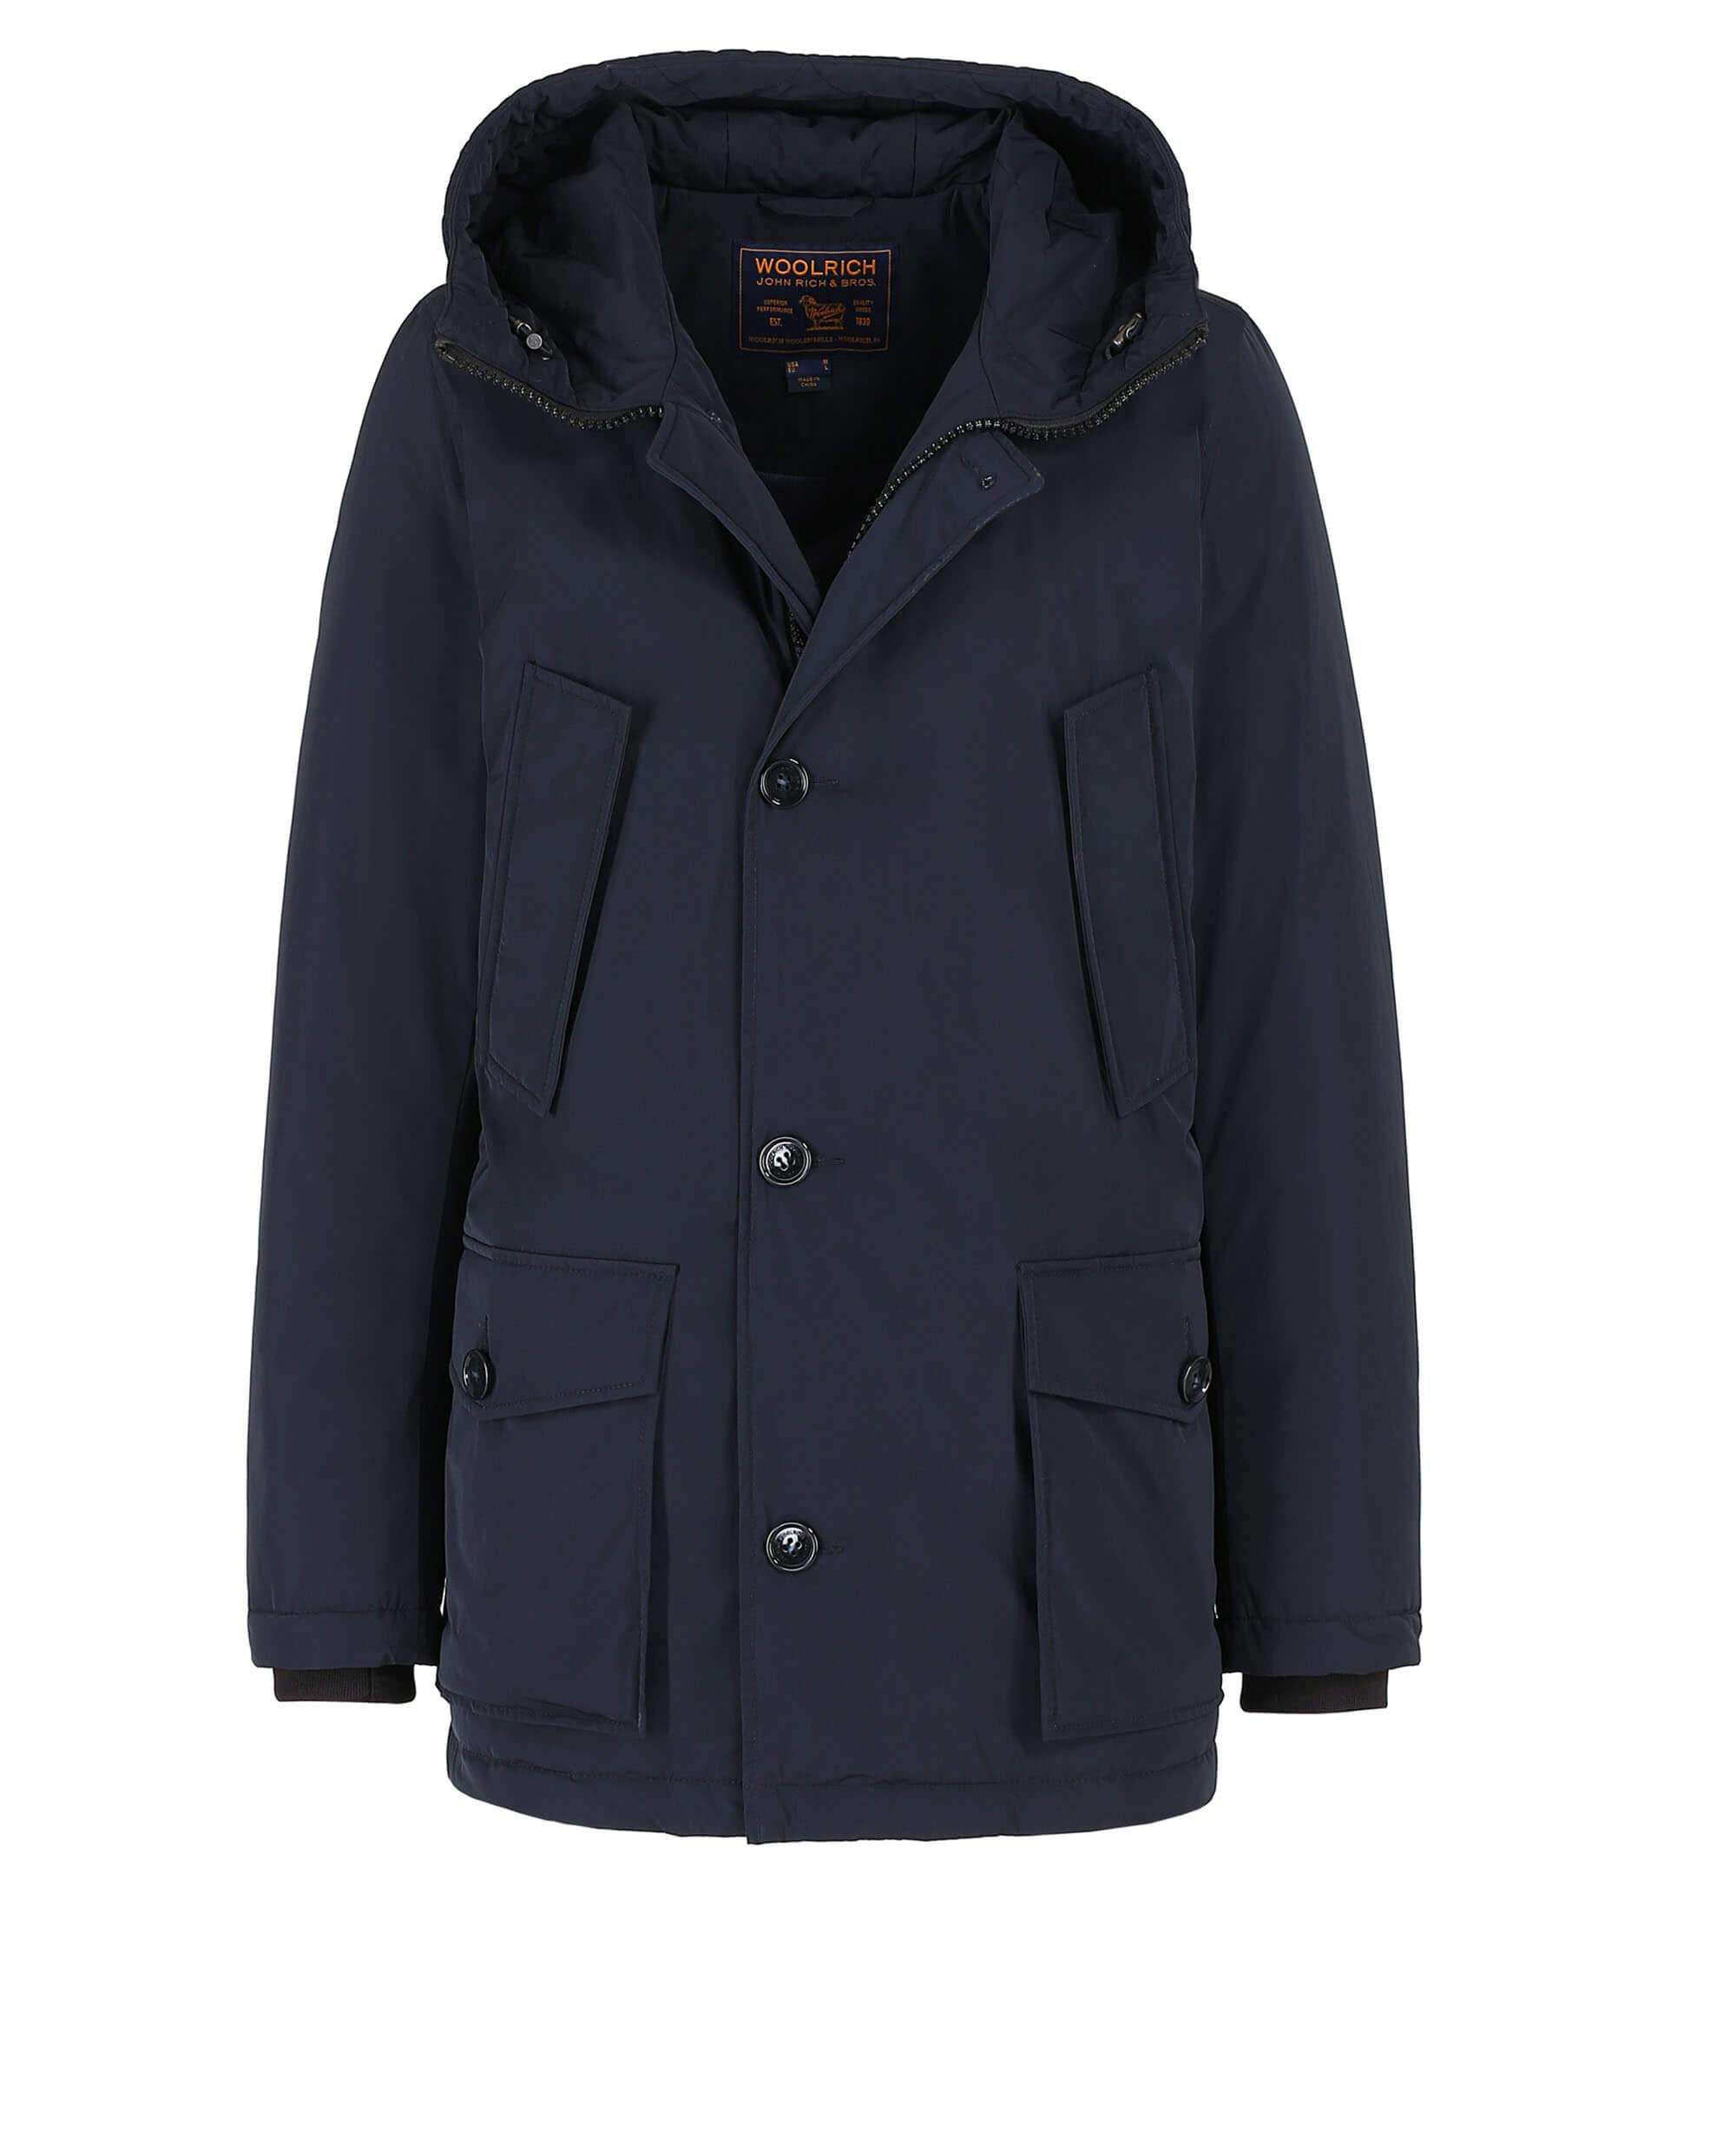 WOOLRICH City Parka wocps2468-cf40-324